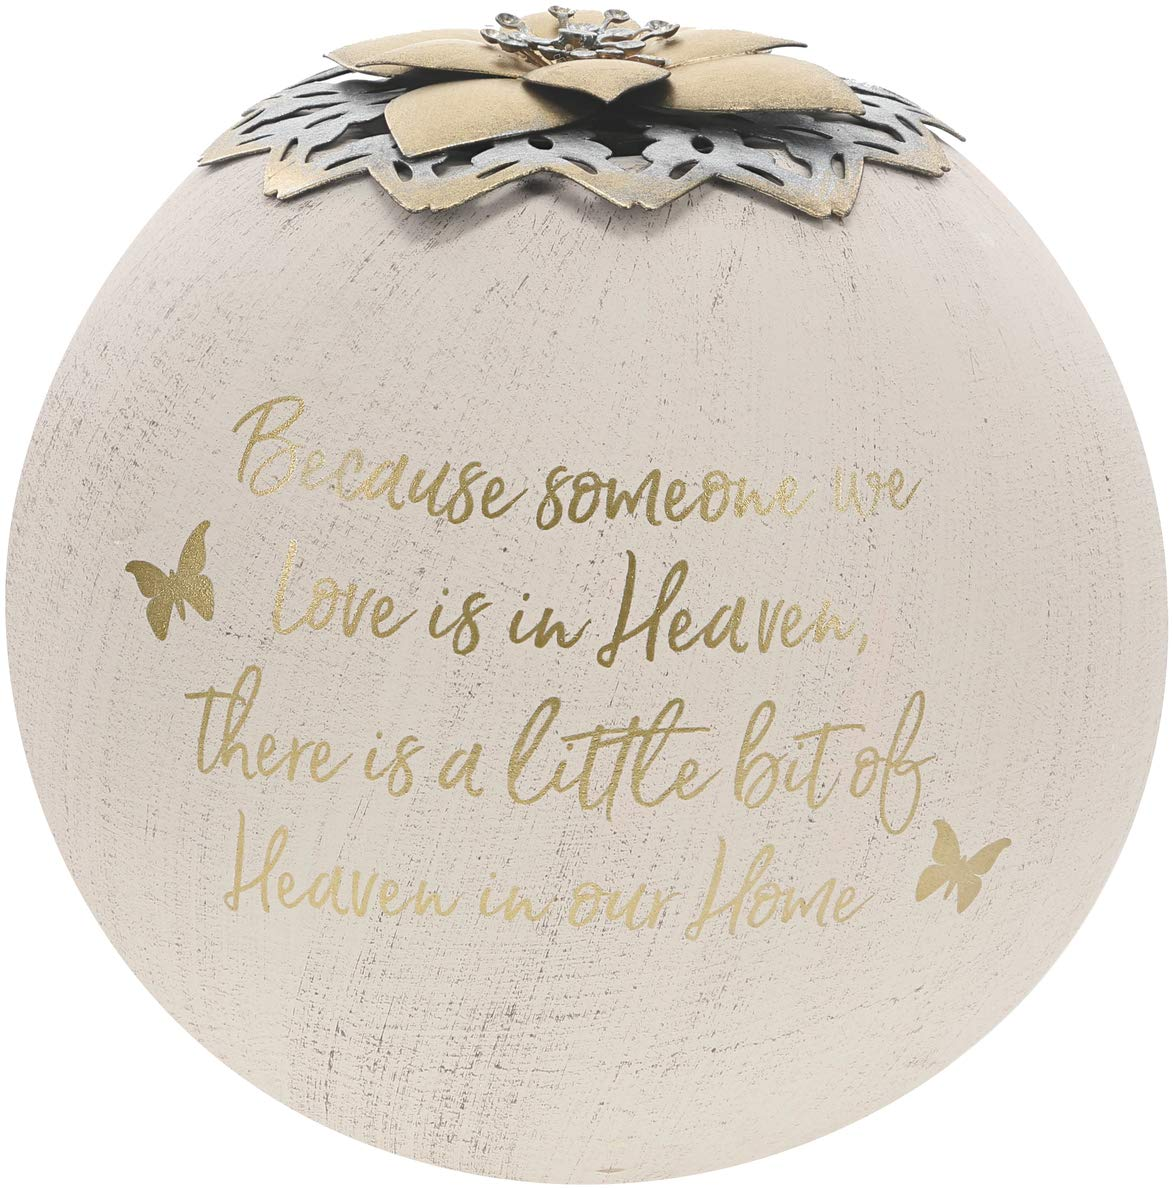 Little Bit of Heaven in Our Home 5.5 Inch Gold Pavilion Gift Company Round 5 Inch Tealight Candle Holder Because Someone We Love